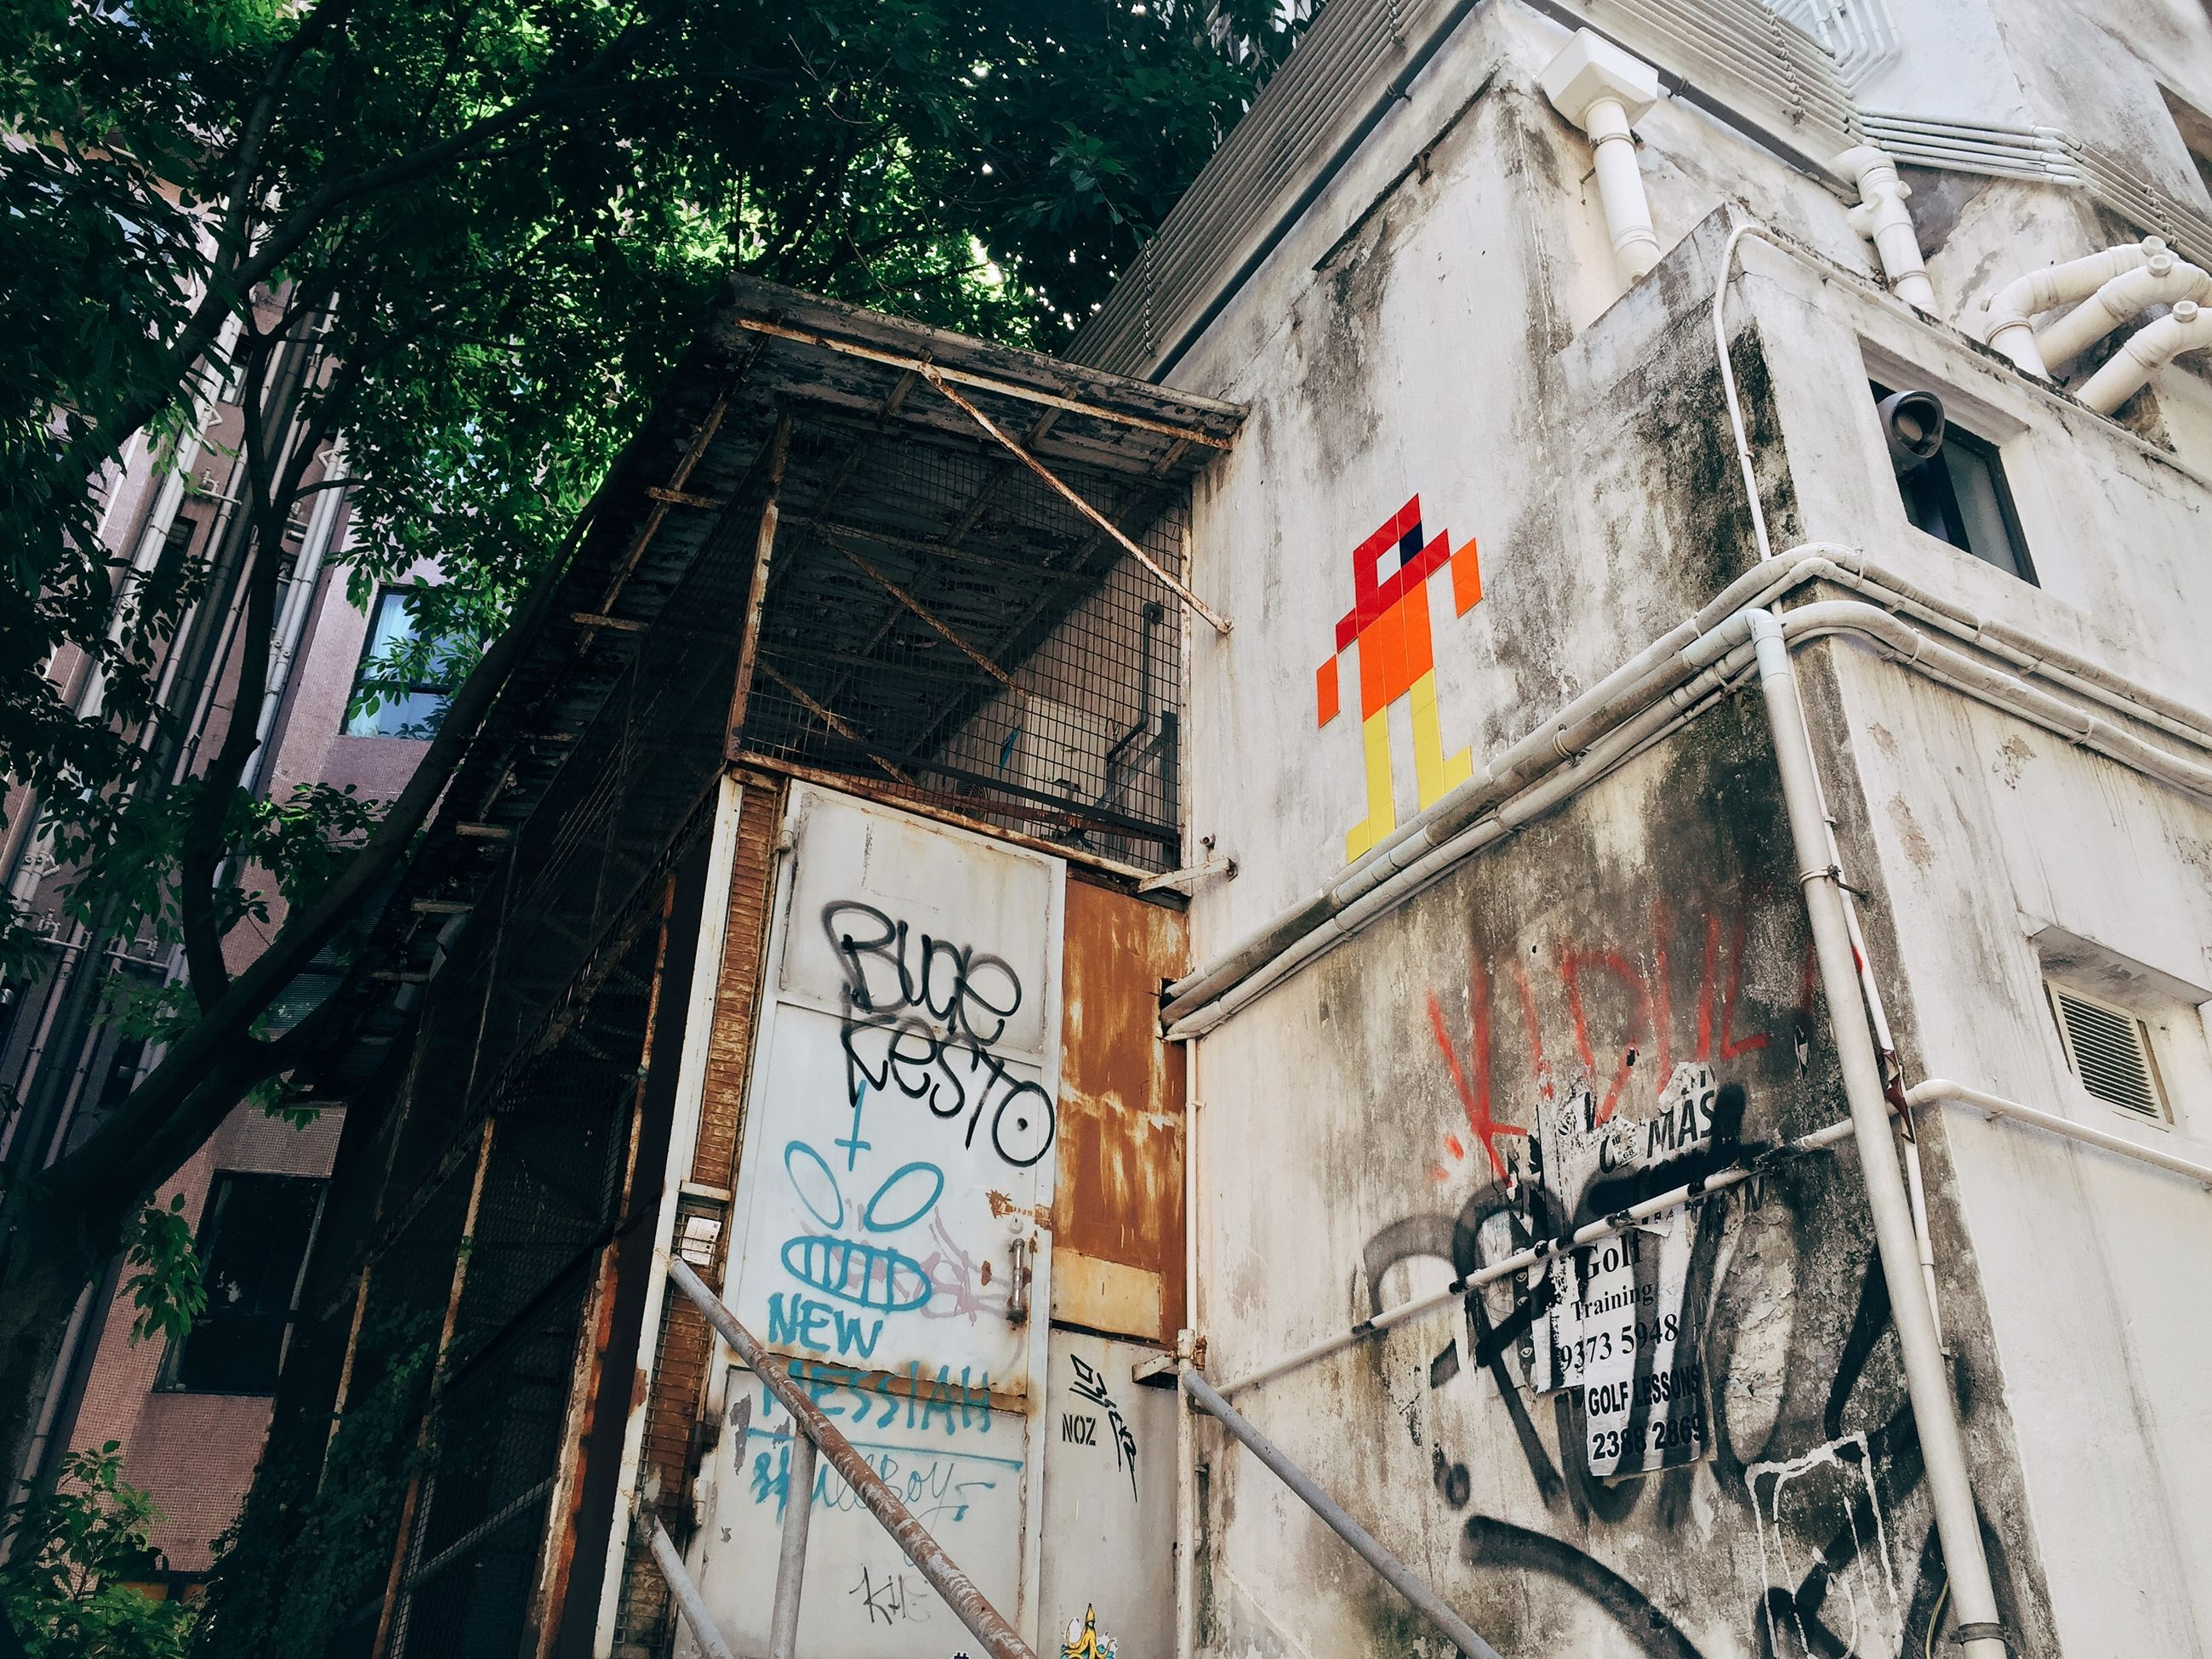 architecture, built structure, building exterior, text, low angle view, western script, graffiti, communication, window, building, day, capital letter, wall - building feature, no people, outdoors, sign, non-western script, information, art and craft, brick wall